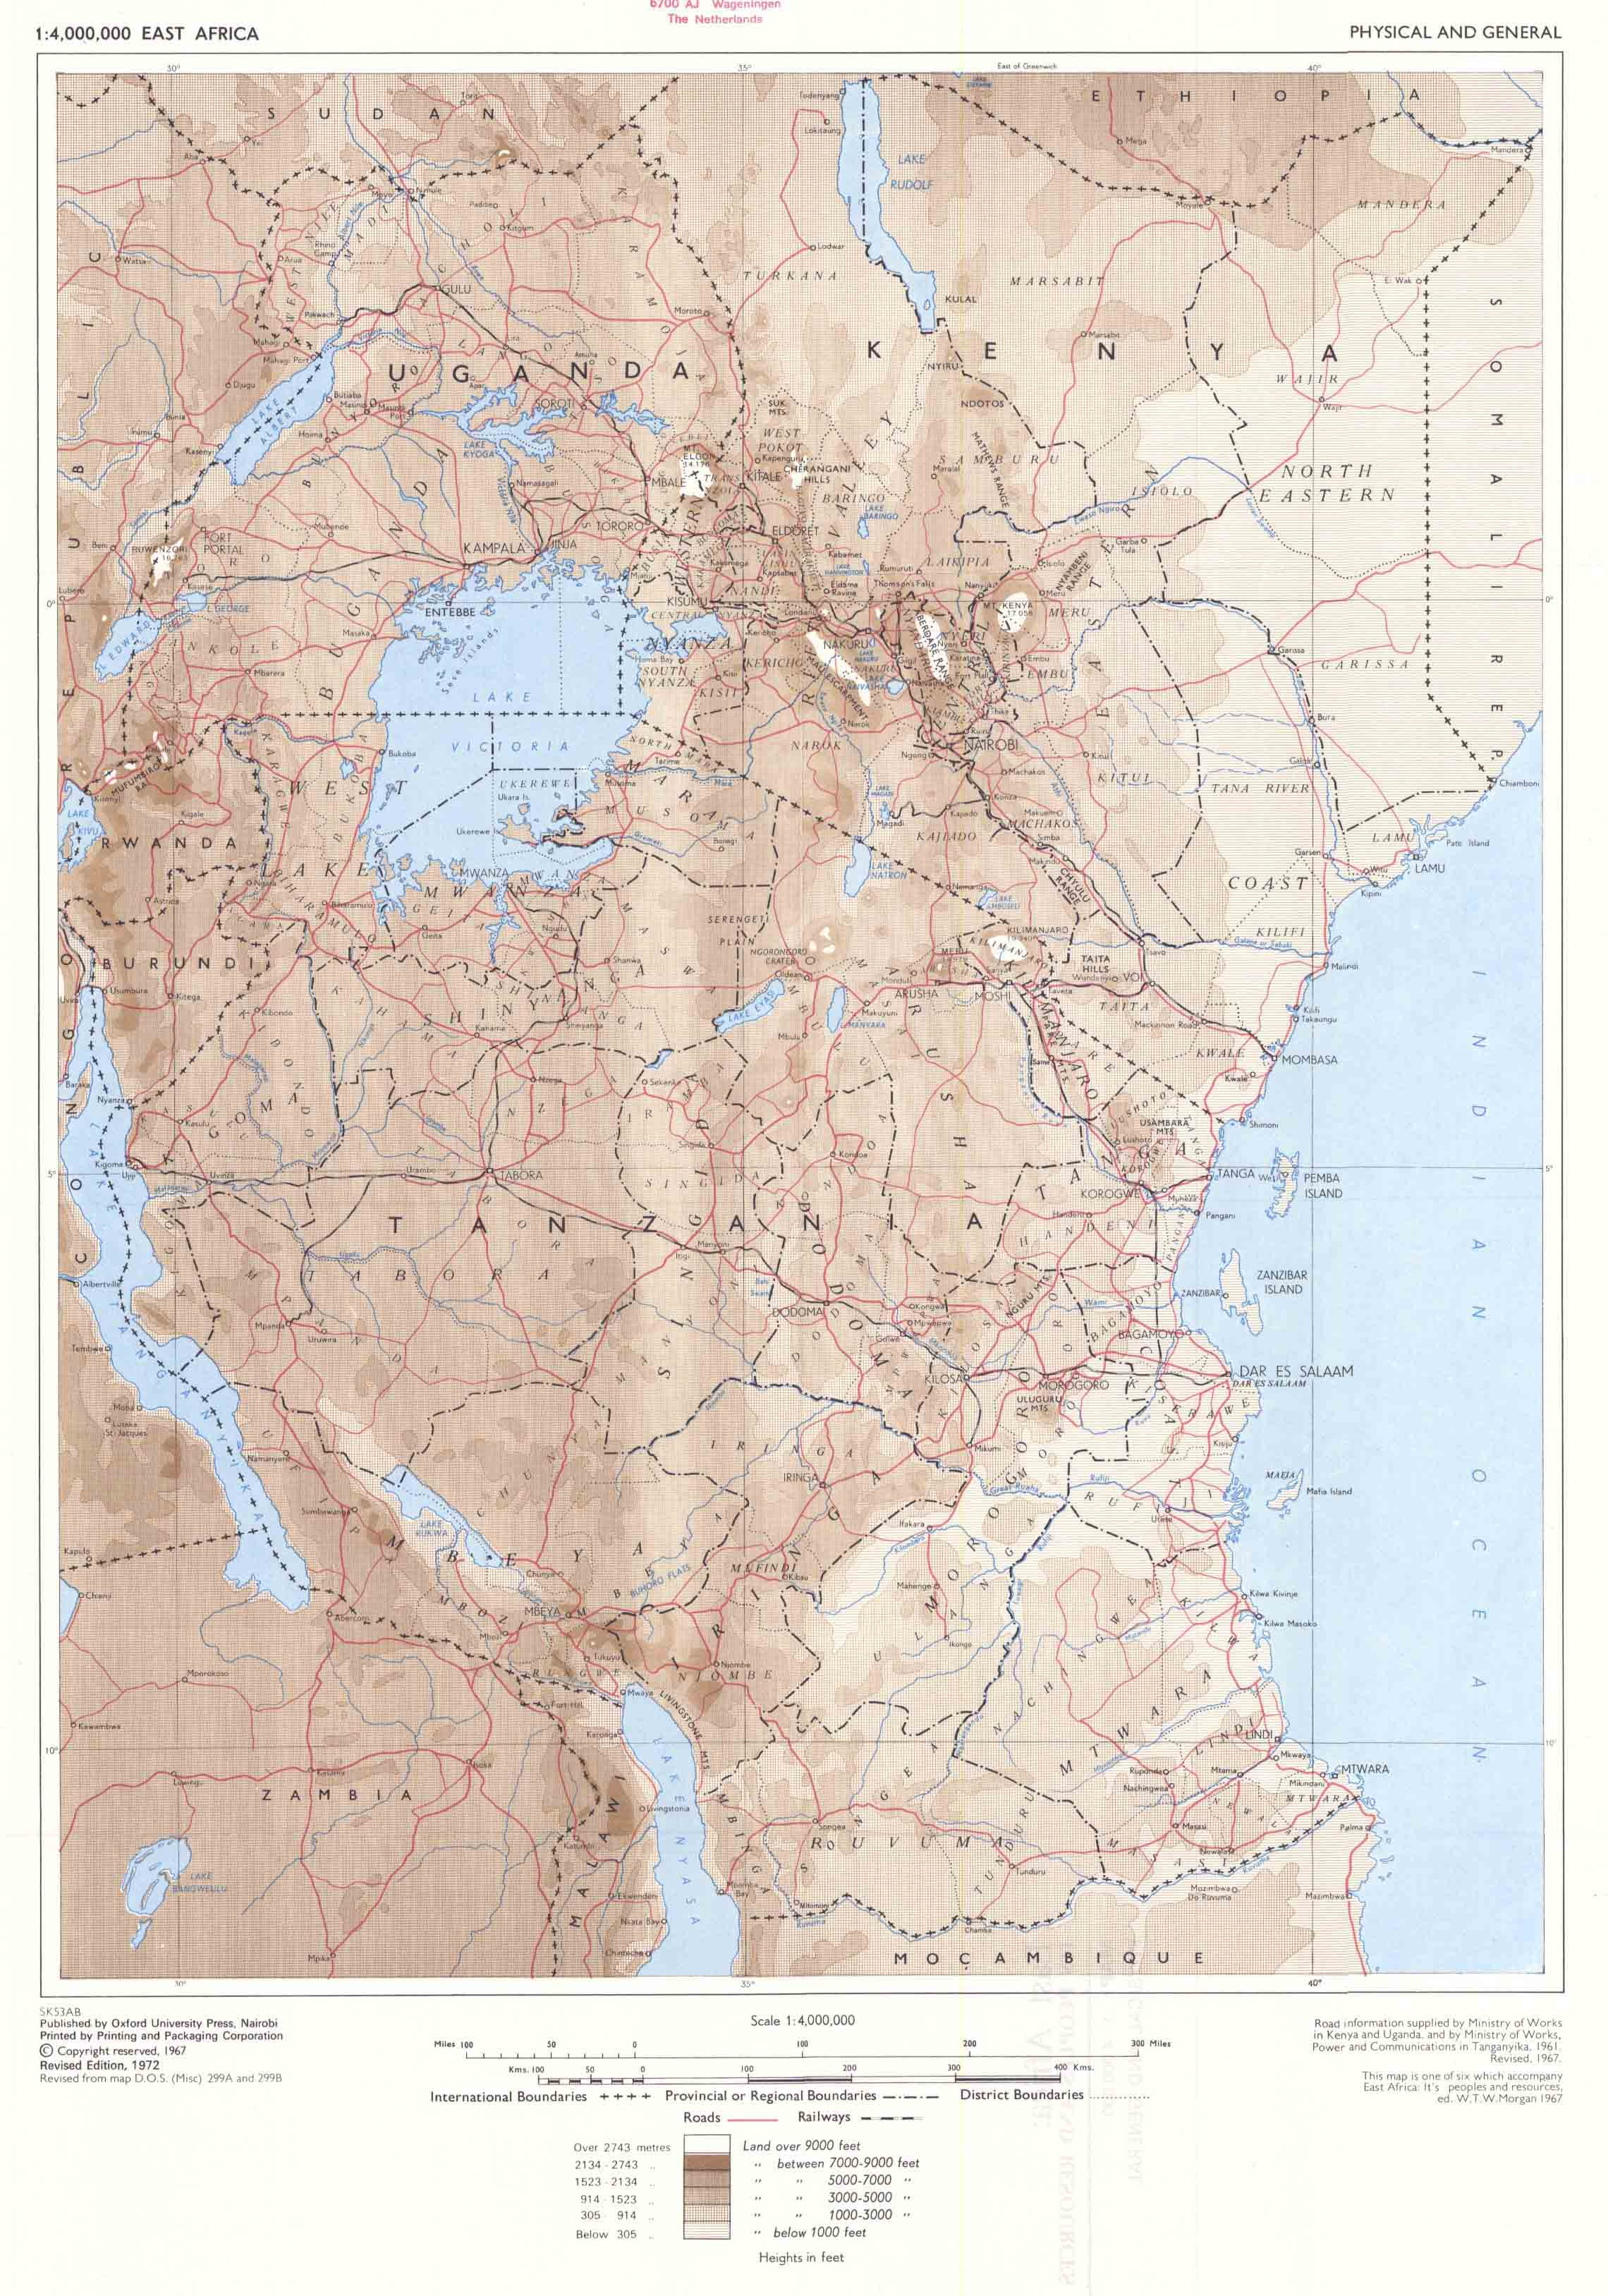 National soil maps eudasm esdac european commission resource type national soil maps eudasm maps maps documents themesub theme networkcooperations projects continent africa gumiabroncs Image collections